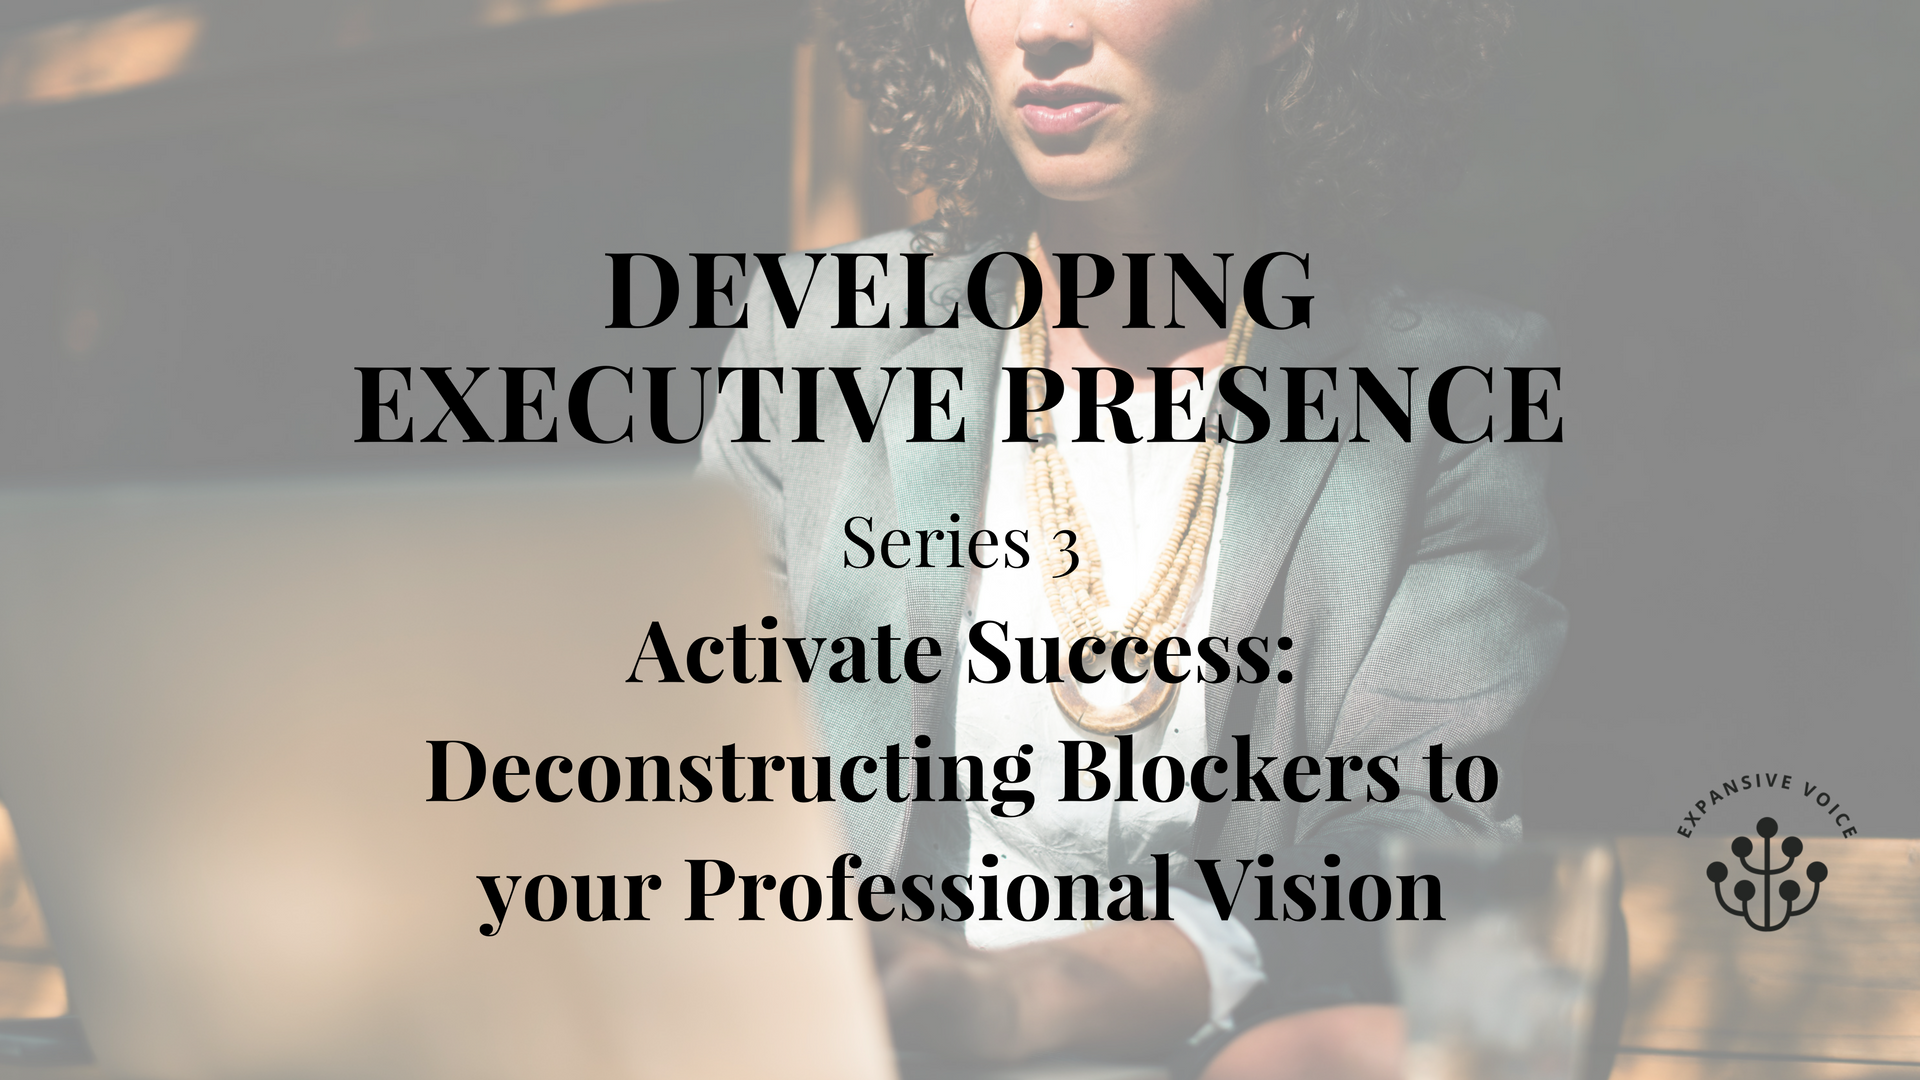 Developing Executive Presence Series 3.png